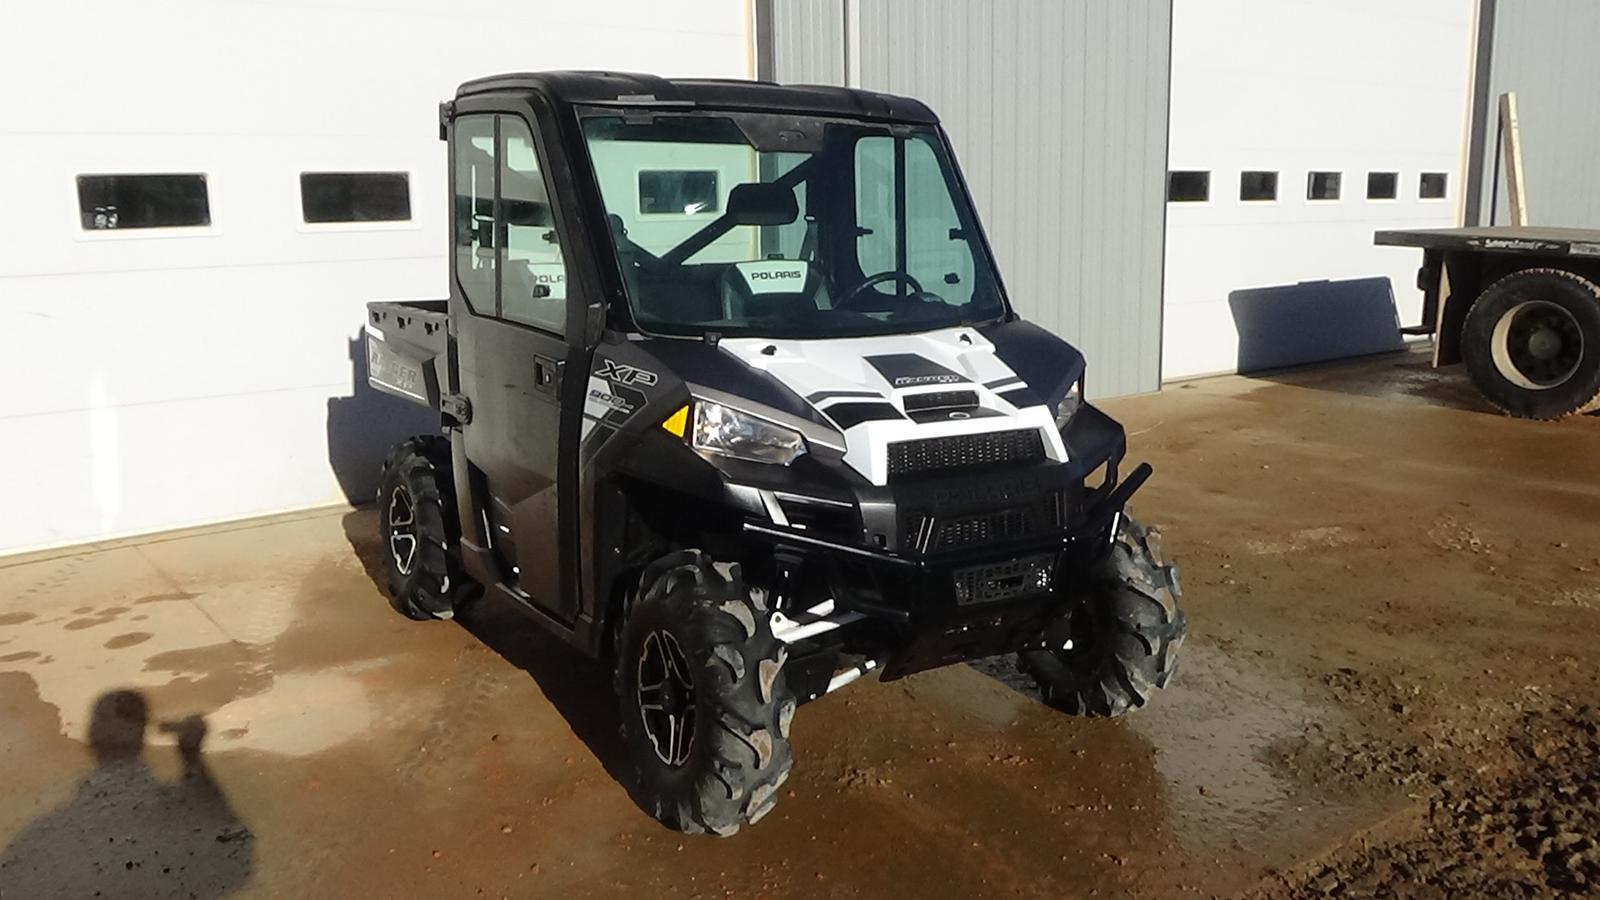 2016 polaris industries ranger xp 900 eps le